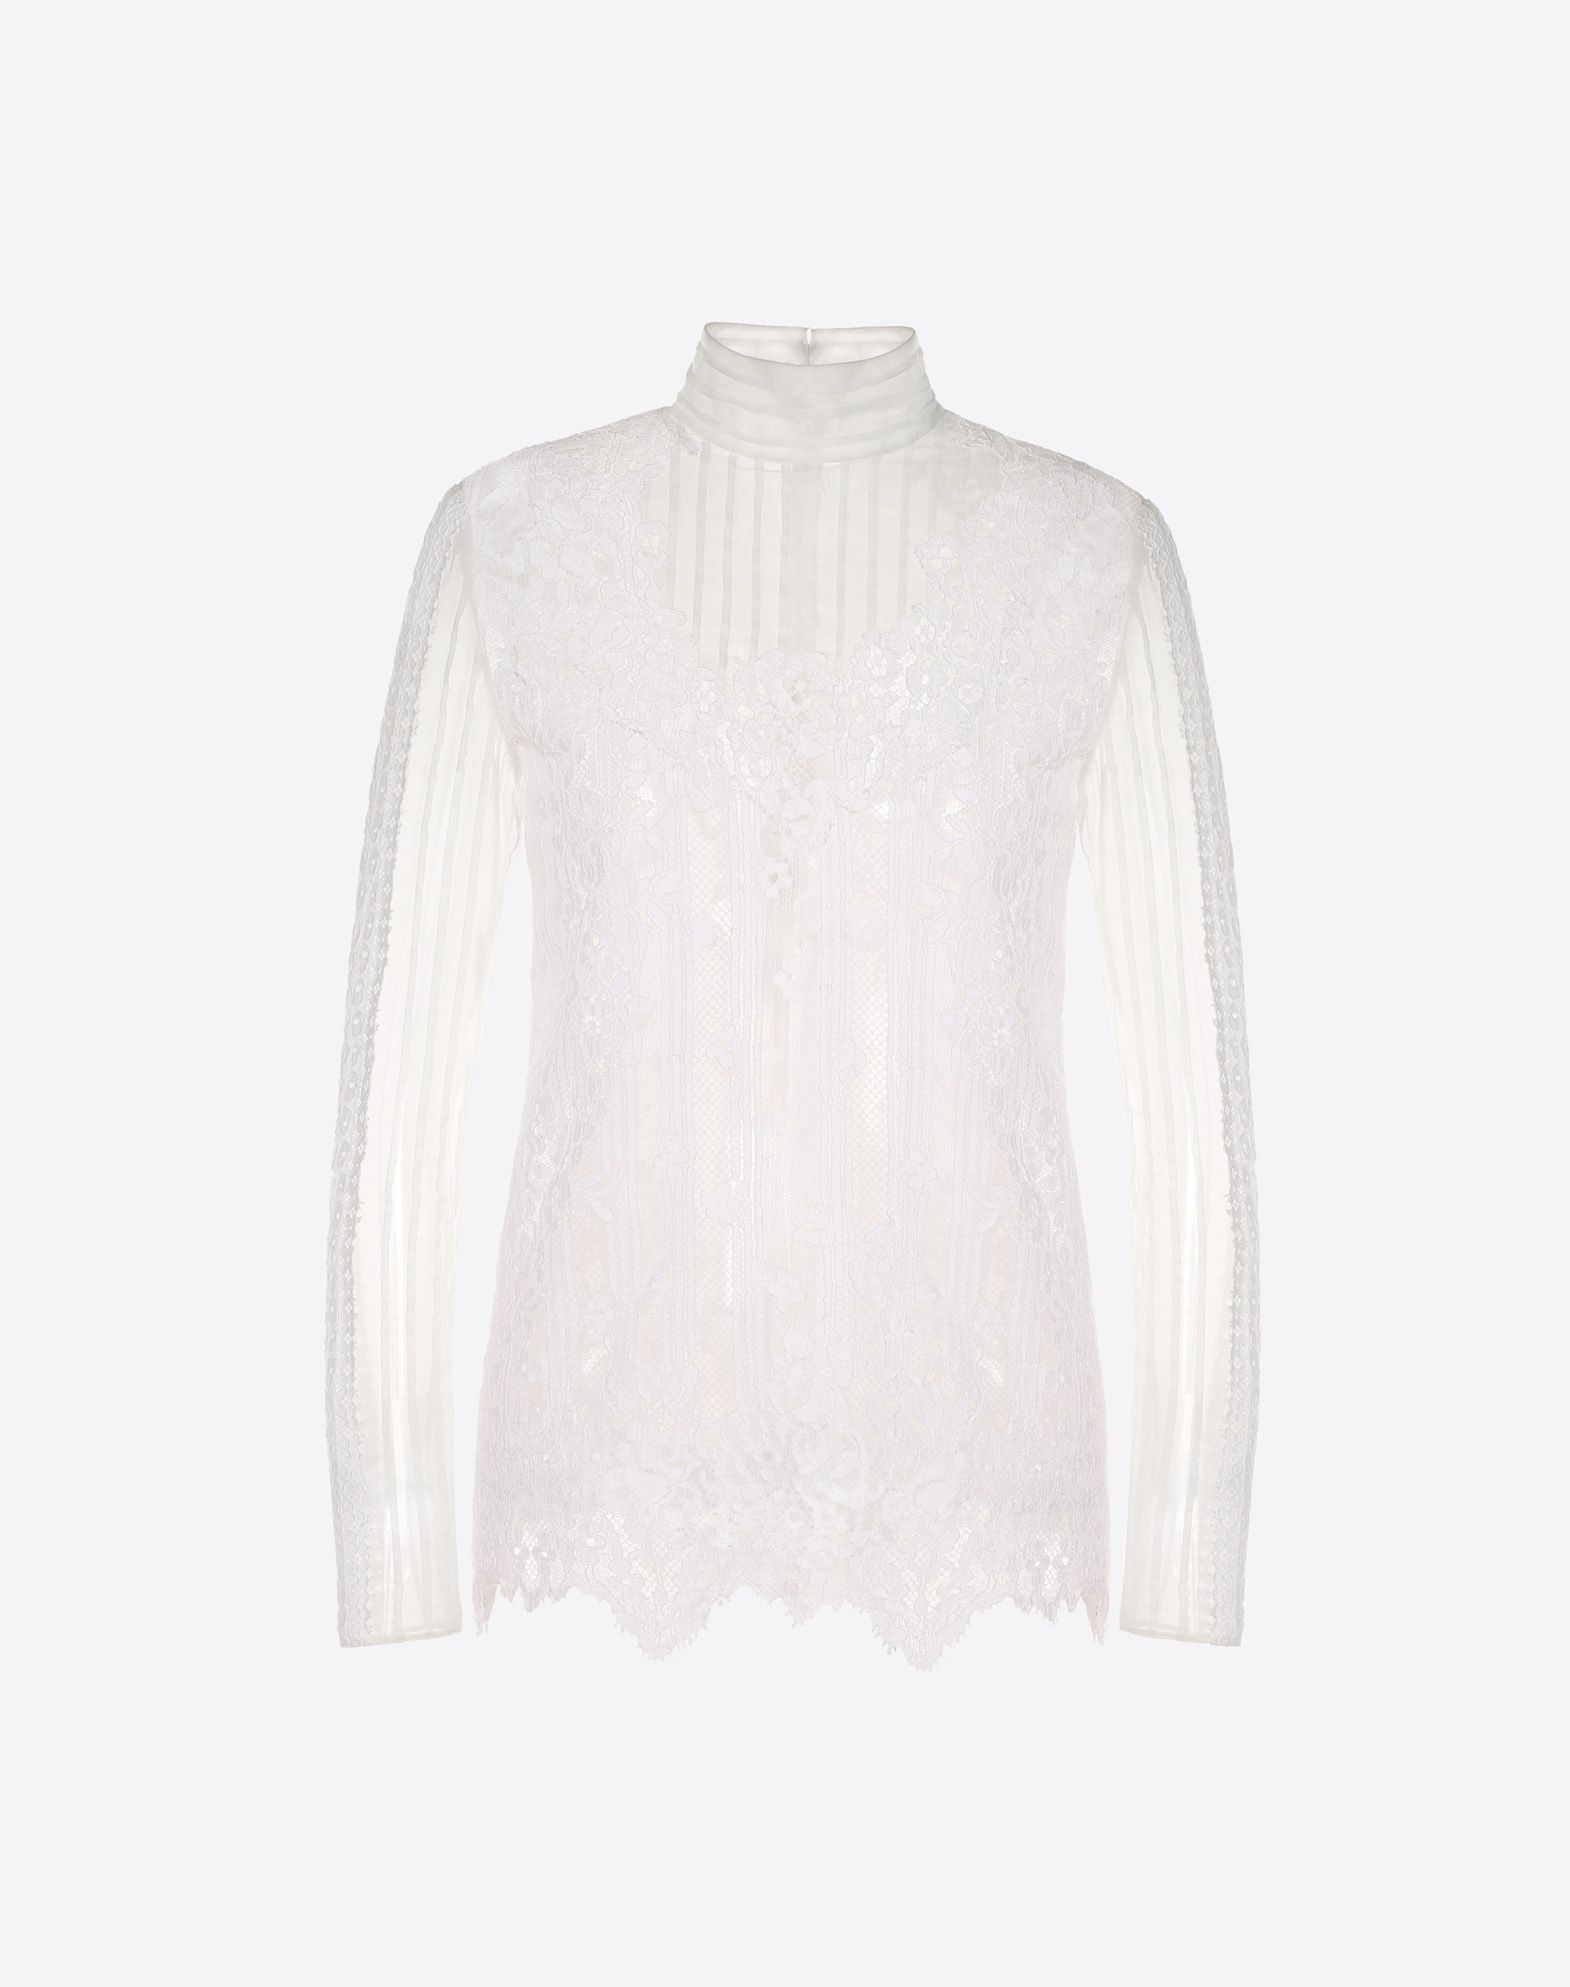 VALENTINO Chiffon and lace top TOP D f